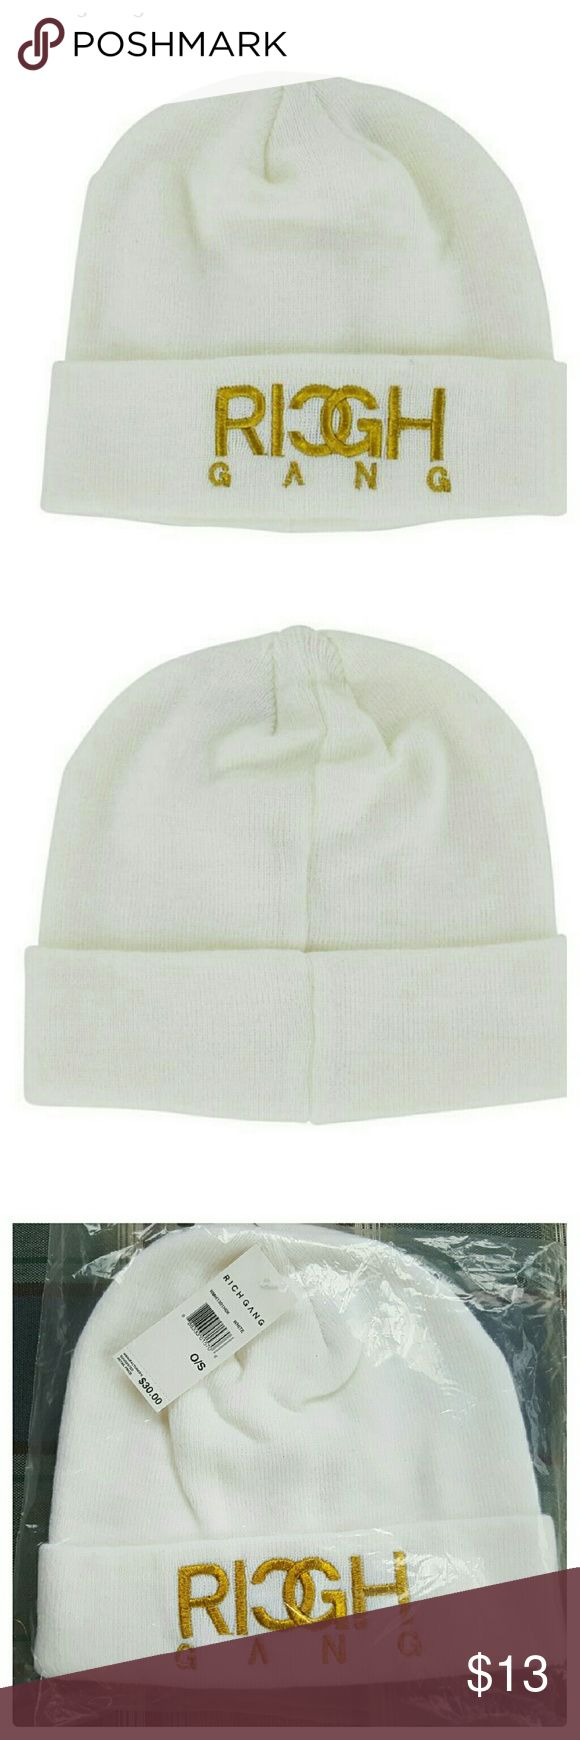 JUST ARRIVED: **MENS** Rich Gang knit beanie NWT White Mens knit Beanie  Brand: Rich Gang. Brand new with tags in package. Size. One size. Rich Gang Accessories Hats